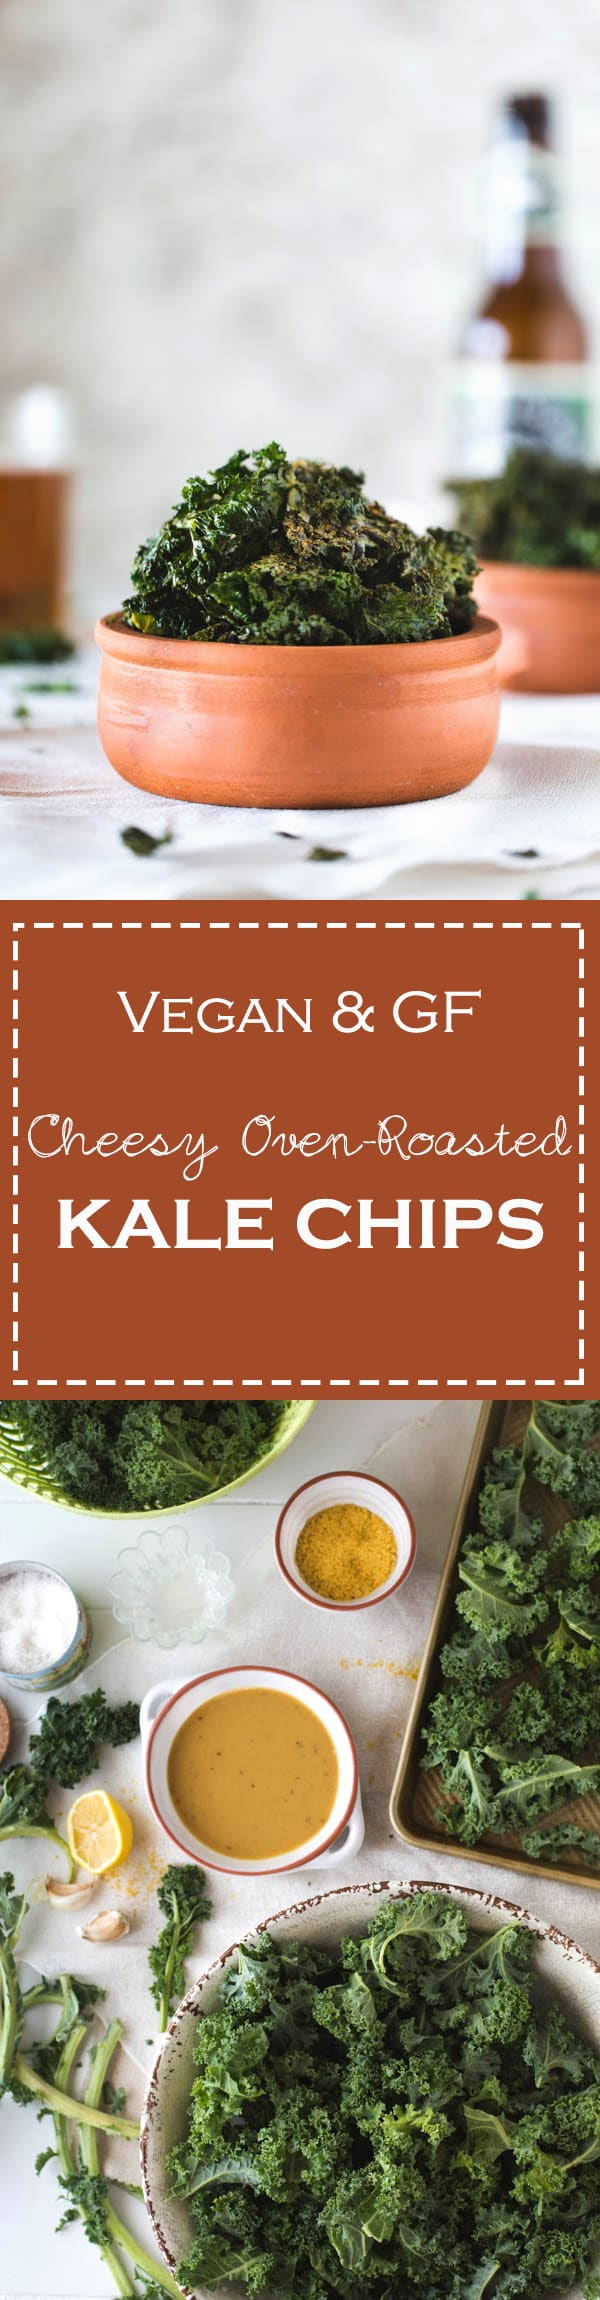 Cheesy Oven Roasted Kale Chips